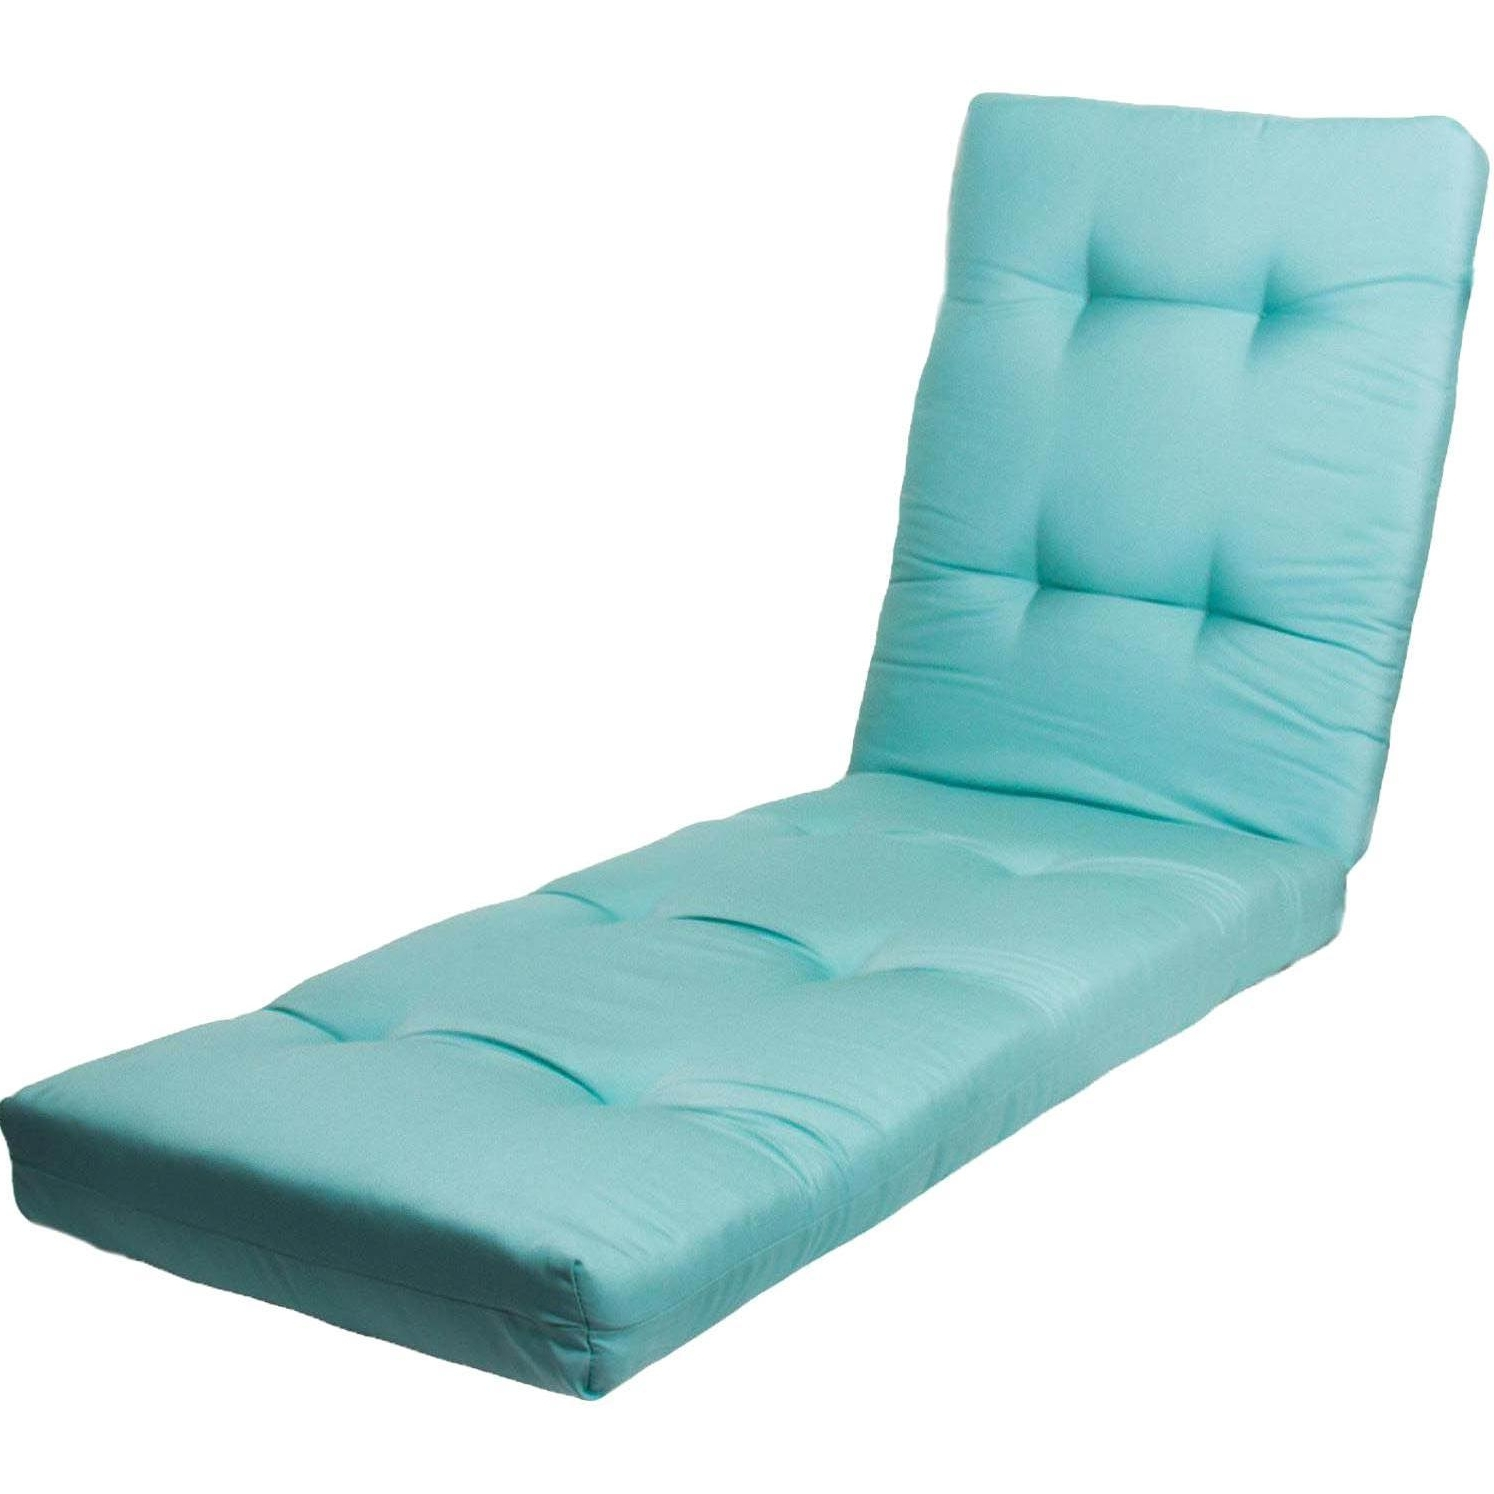 Sunbrella Chaise Lounge Cushions In Popular Sunbrella Canvas Glacier Extra Long Outdoor Replacement Chaise (View 11 of 15)